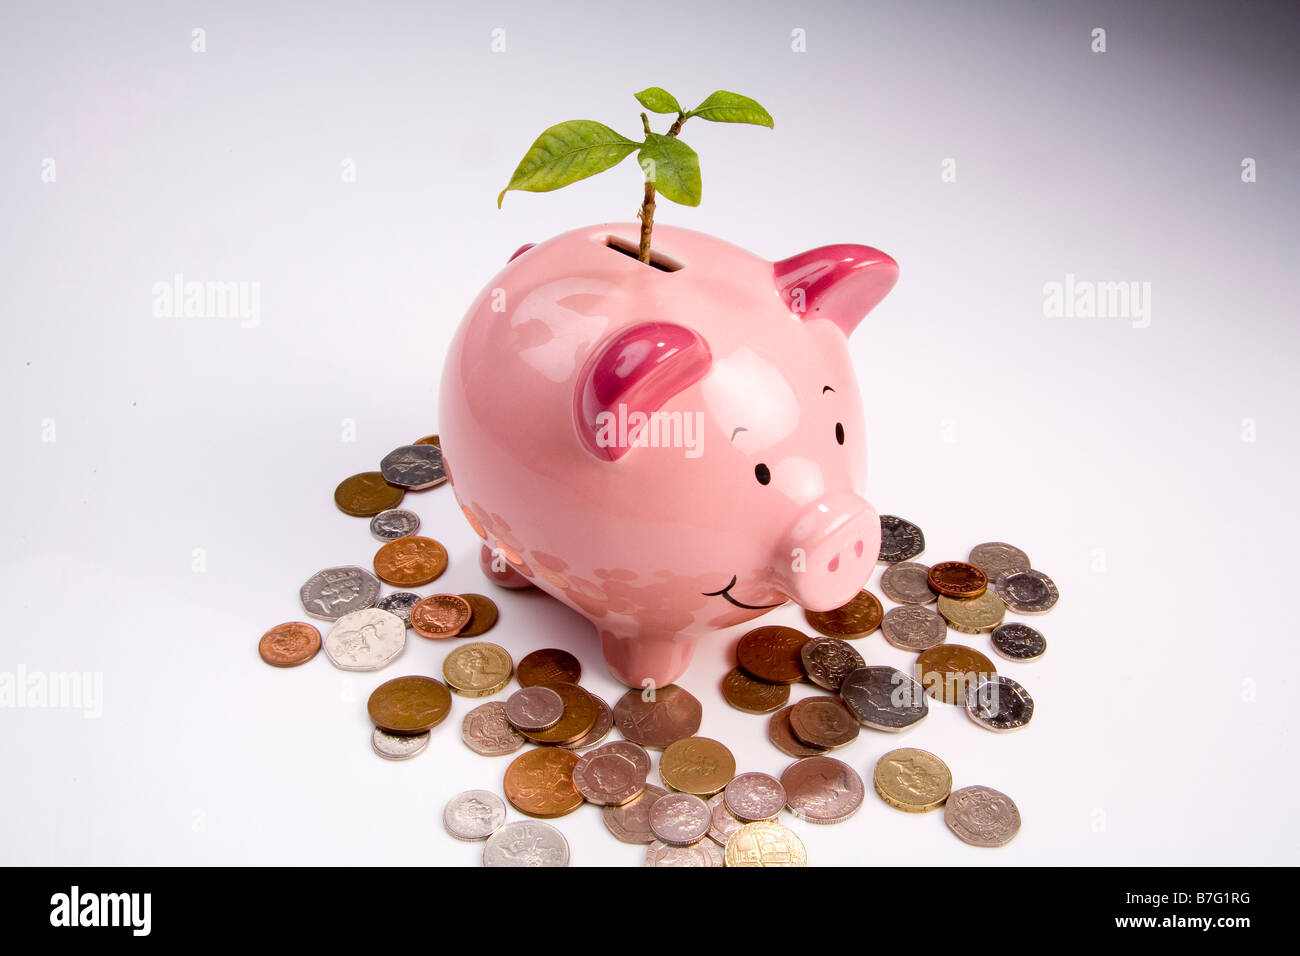 Green shoots of financial Recovery - Stock Image